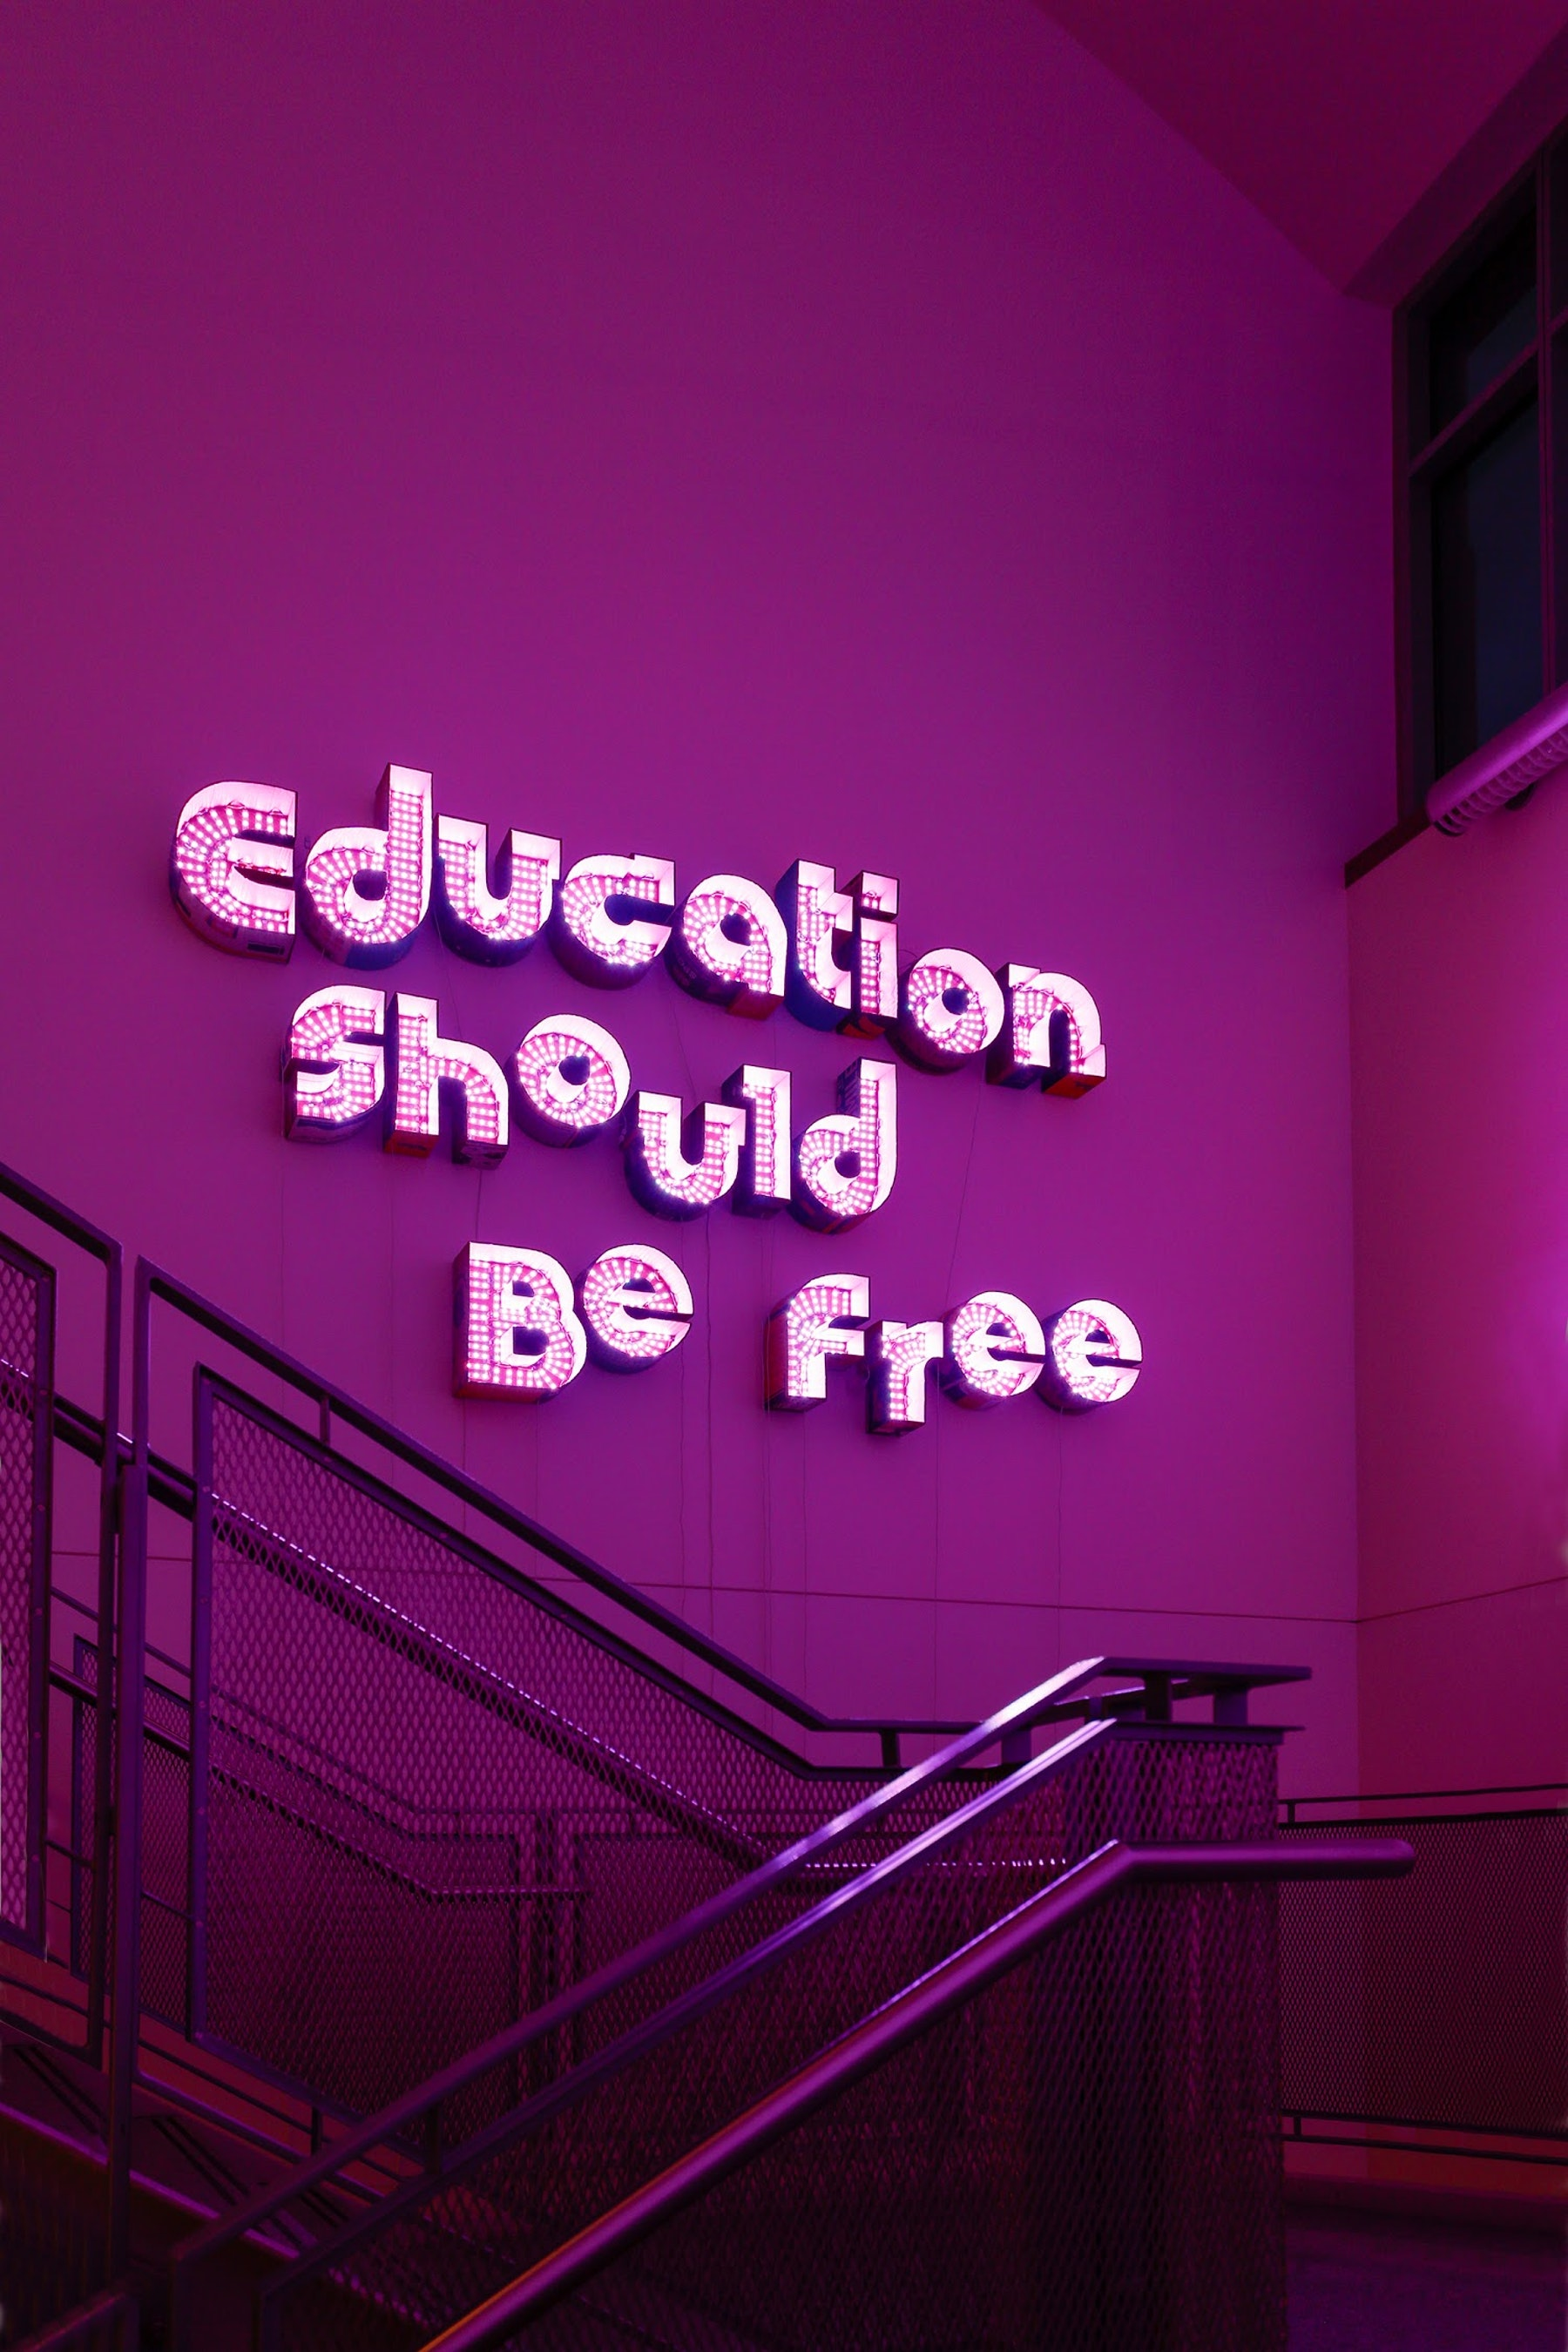 """Andrea Bowers """"Education Should be Free,"""" 2016 Cardboard and color changing LED lights 65.7 x 107"""" [HxW] (166.88 x 271.78 cm) Inventory #BOW454 Courtesy of the artist and Vielmetter Los Angeles Photo credit: Mark Woods"""